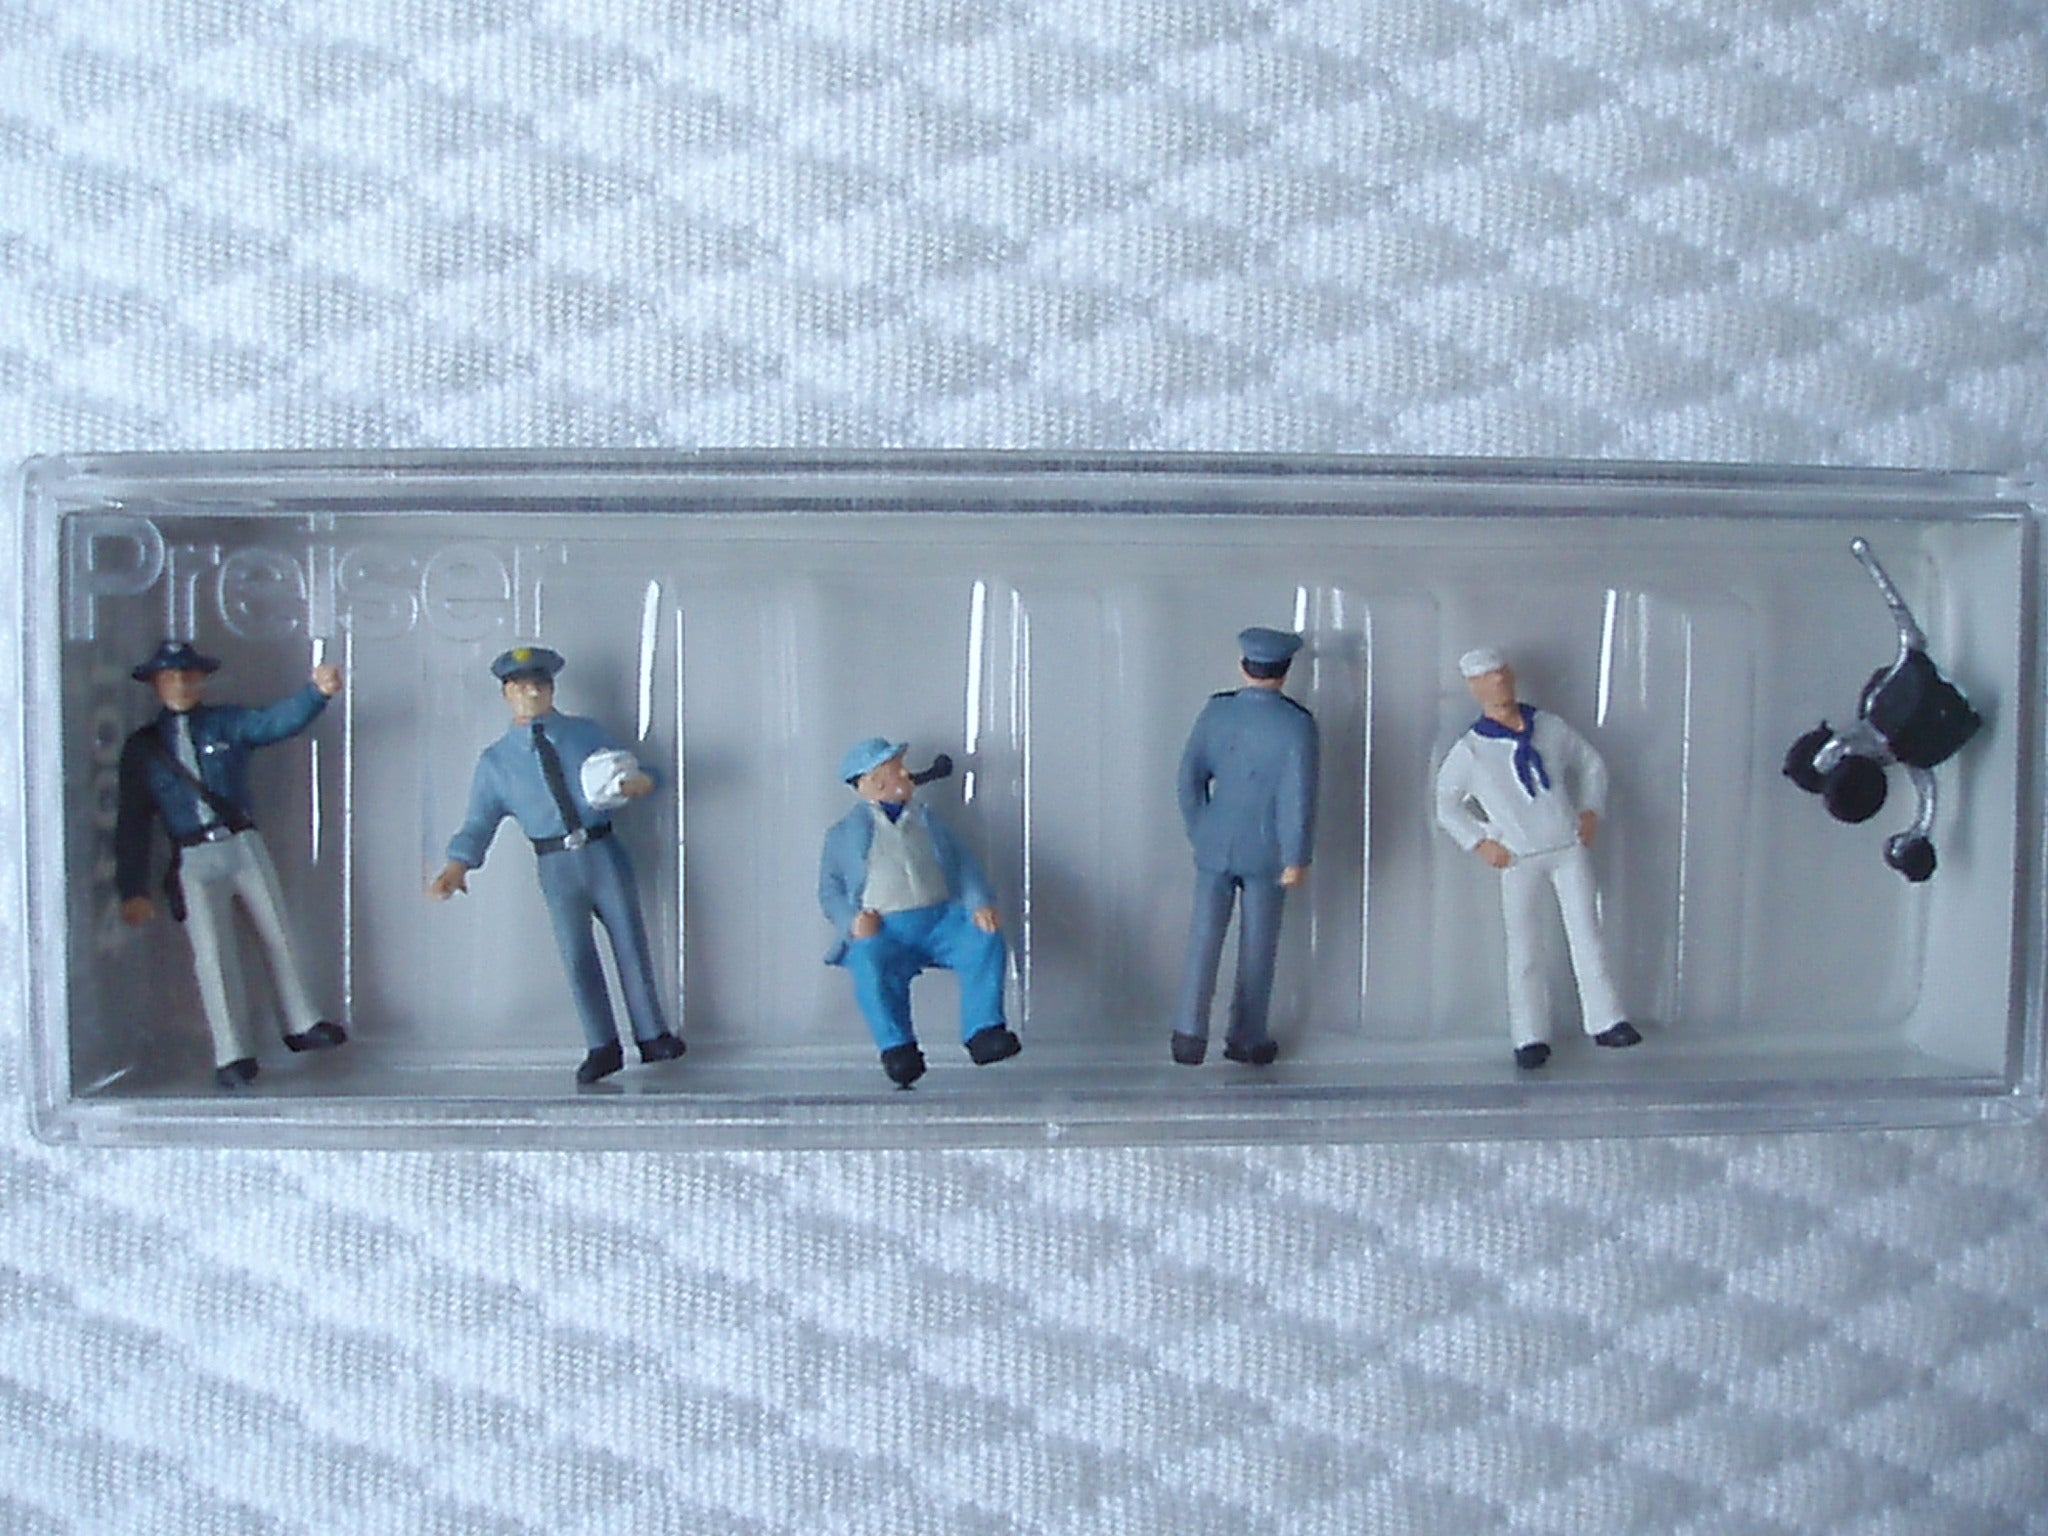 REF 10014 PROFESSIONS DIVERSES MARIN POLICIERS CASQUETTES PIPE PREISER NEUF ECHELLE HO 1/87